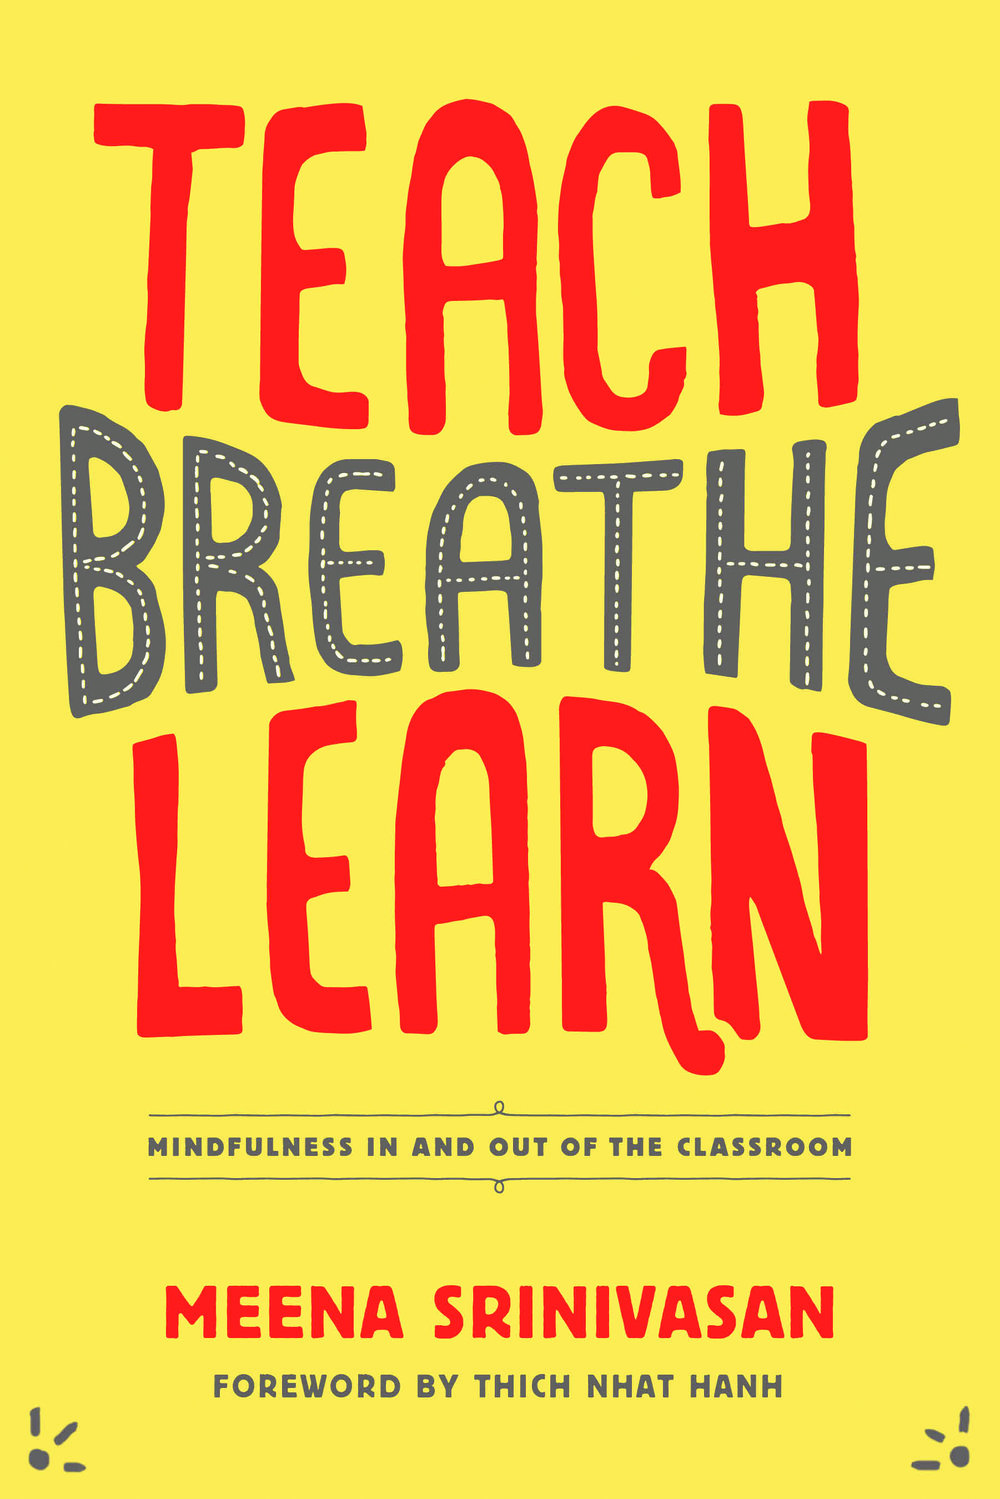 "- ""Mindfulness offers a way for us to tap into the inner resilience, focus and wellbeing that are already inside us. Teach, Breathe, Learn is a key that unlocks this inner potential. This book makes mindfulness accessible for teachers everywhere and is a great resource for sharing mindfulness with young people. It is a helpful tool for parents and educators of all backgrounds. As an accomplished international educator and dedicated mindfulness practitioner, Meena Srinivasan brings these two worlds together in this compelling book, showing how to embed mindfulness into teaching and life."" — Congressman Tim Ryan, A Mindful Nation""Meena is a precious ambassador of mindfulness, concretely showing us how to bring mindfulness to the 'front lines' of the classroom, the staffroom, and all throughout our day. The wisdom in this book is grounded in Meena's personal experience of applying mindfulness and compassion to respond rather than react to situations, in order to nurture what is best in us and in our students and skillfully take care of difficult moments."" — Thich Nhat Hanh, Nobel Peace Prize Nominee"